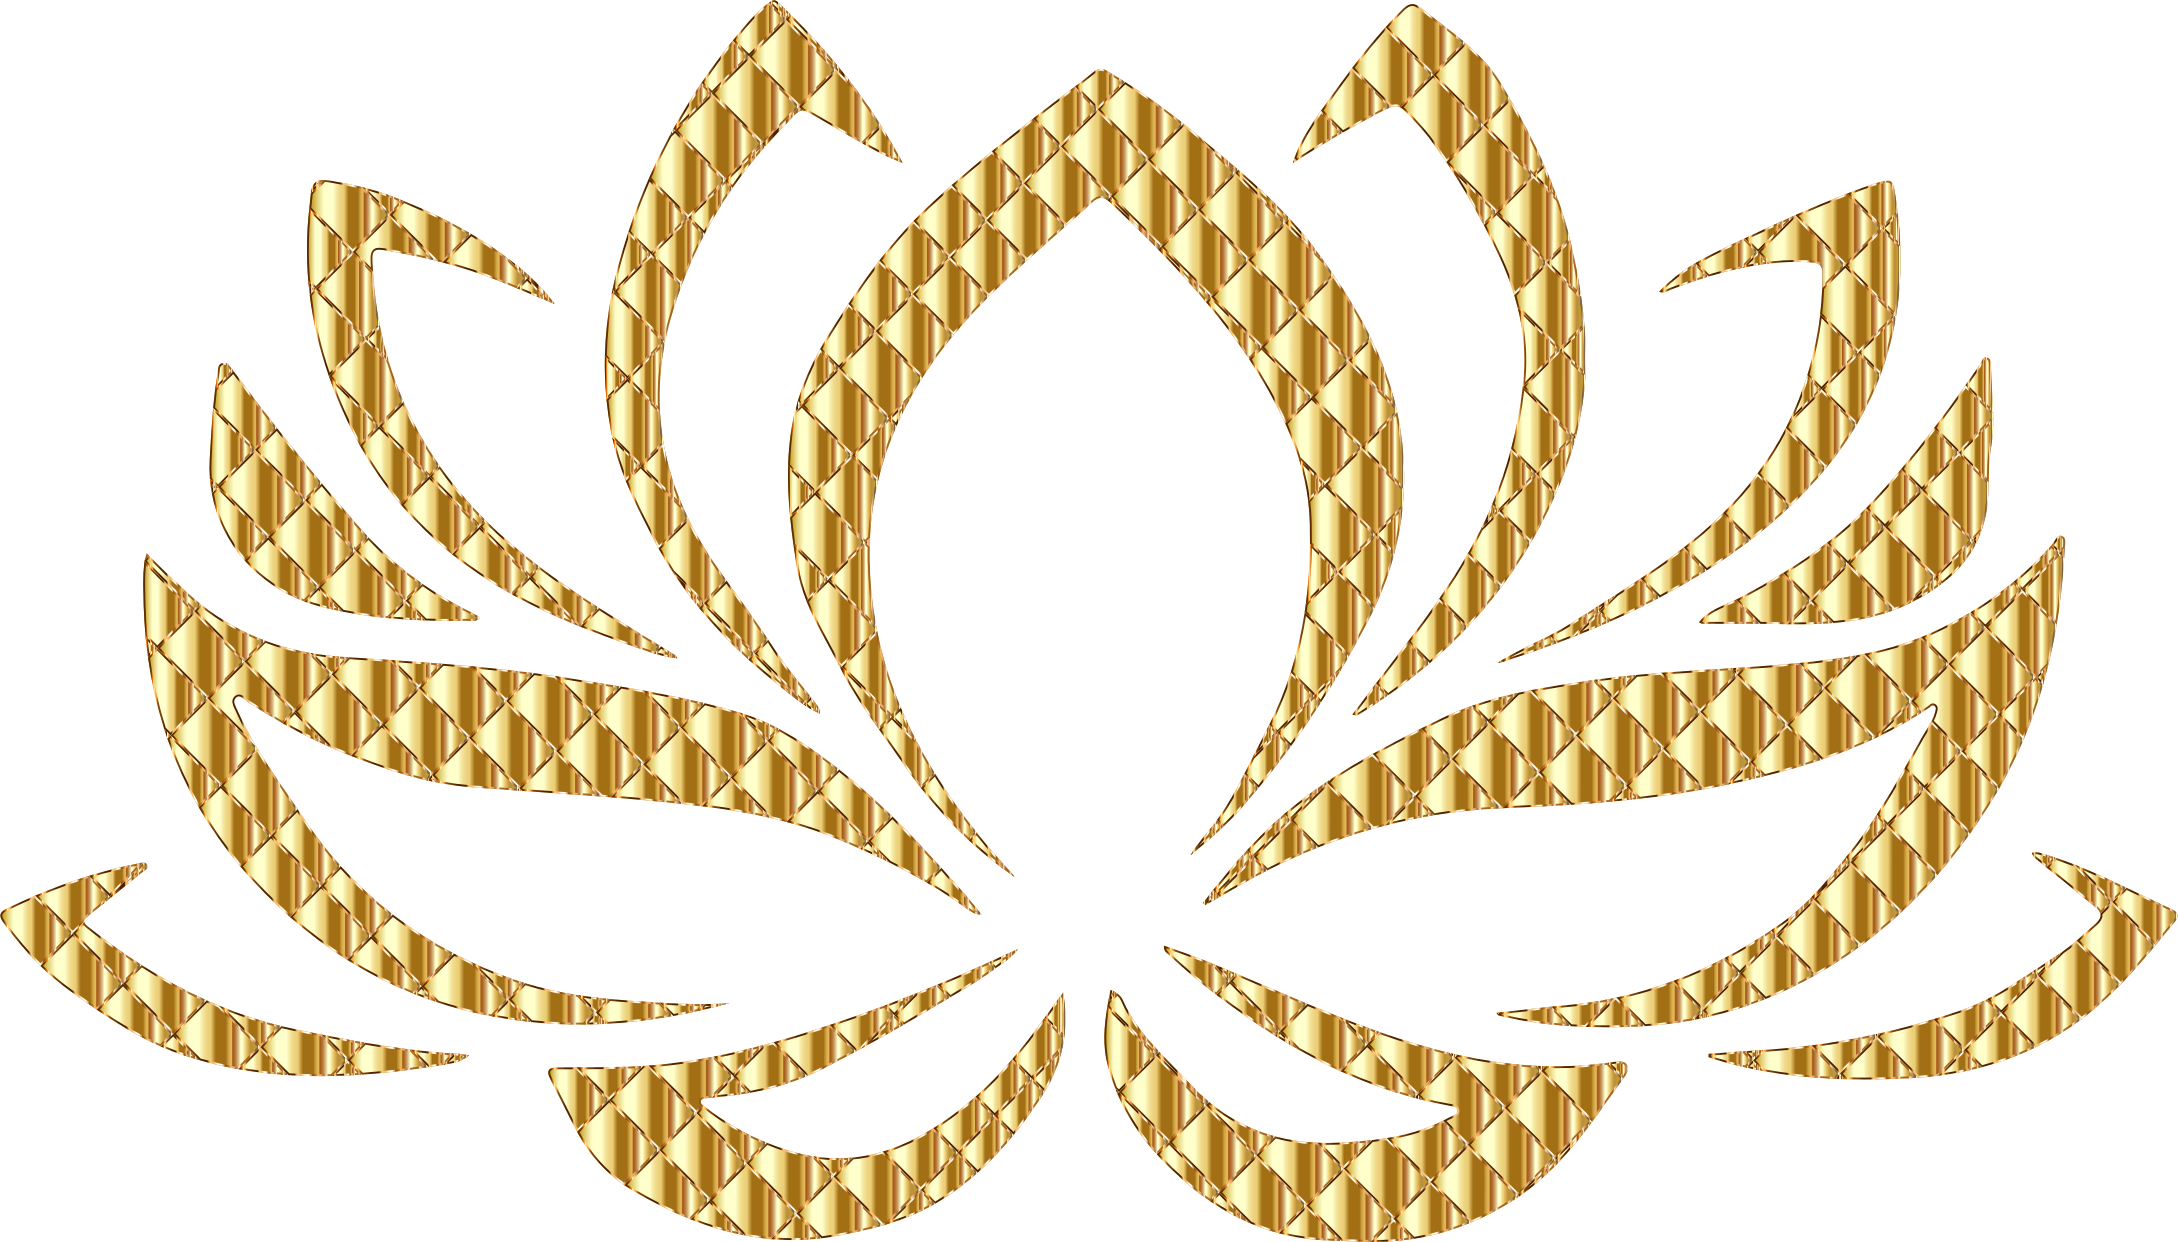 Flower transparent background clipart banner free Clipart - Golden Lotus Flower No Background banner free